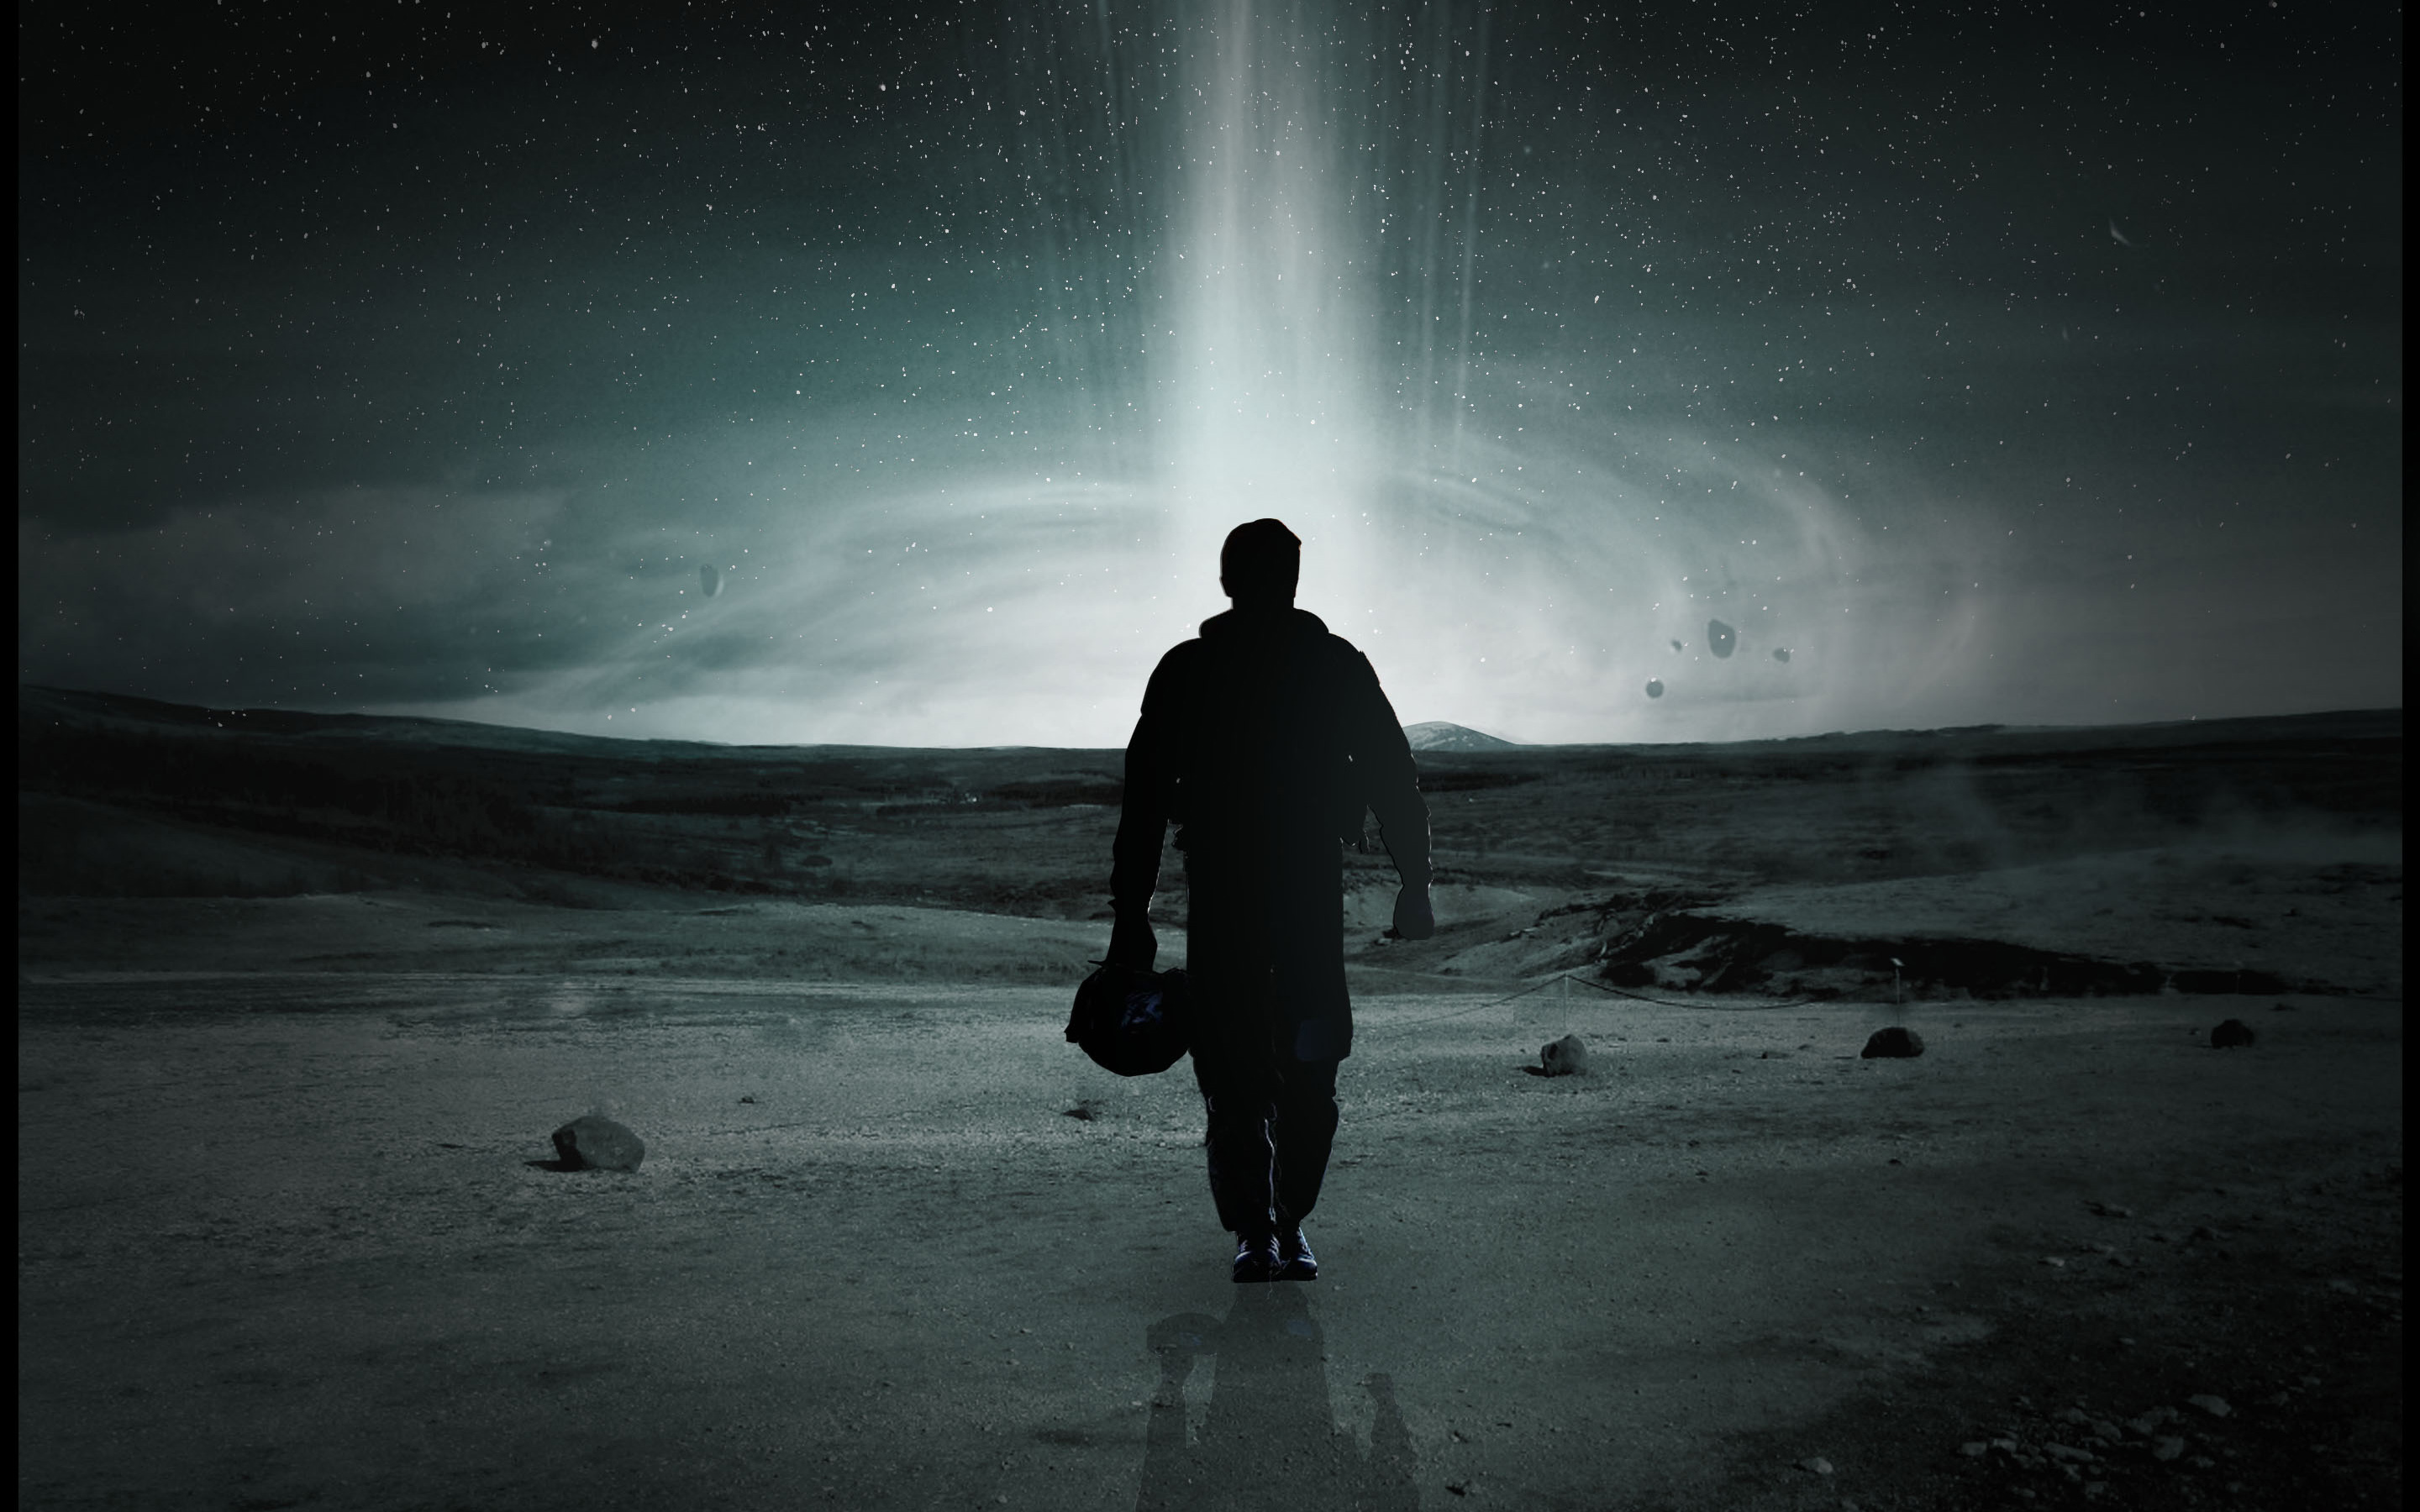 Interstellar Review: A Space Odyssey For Our Times